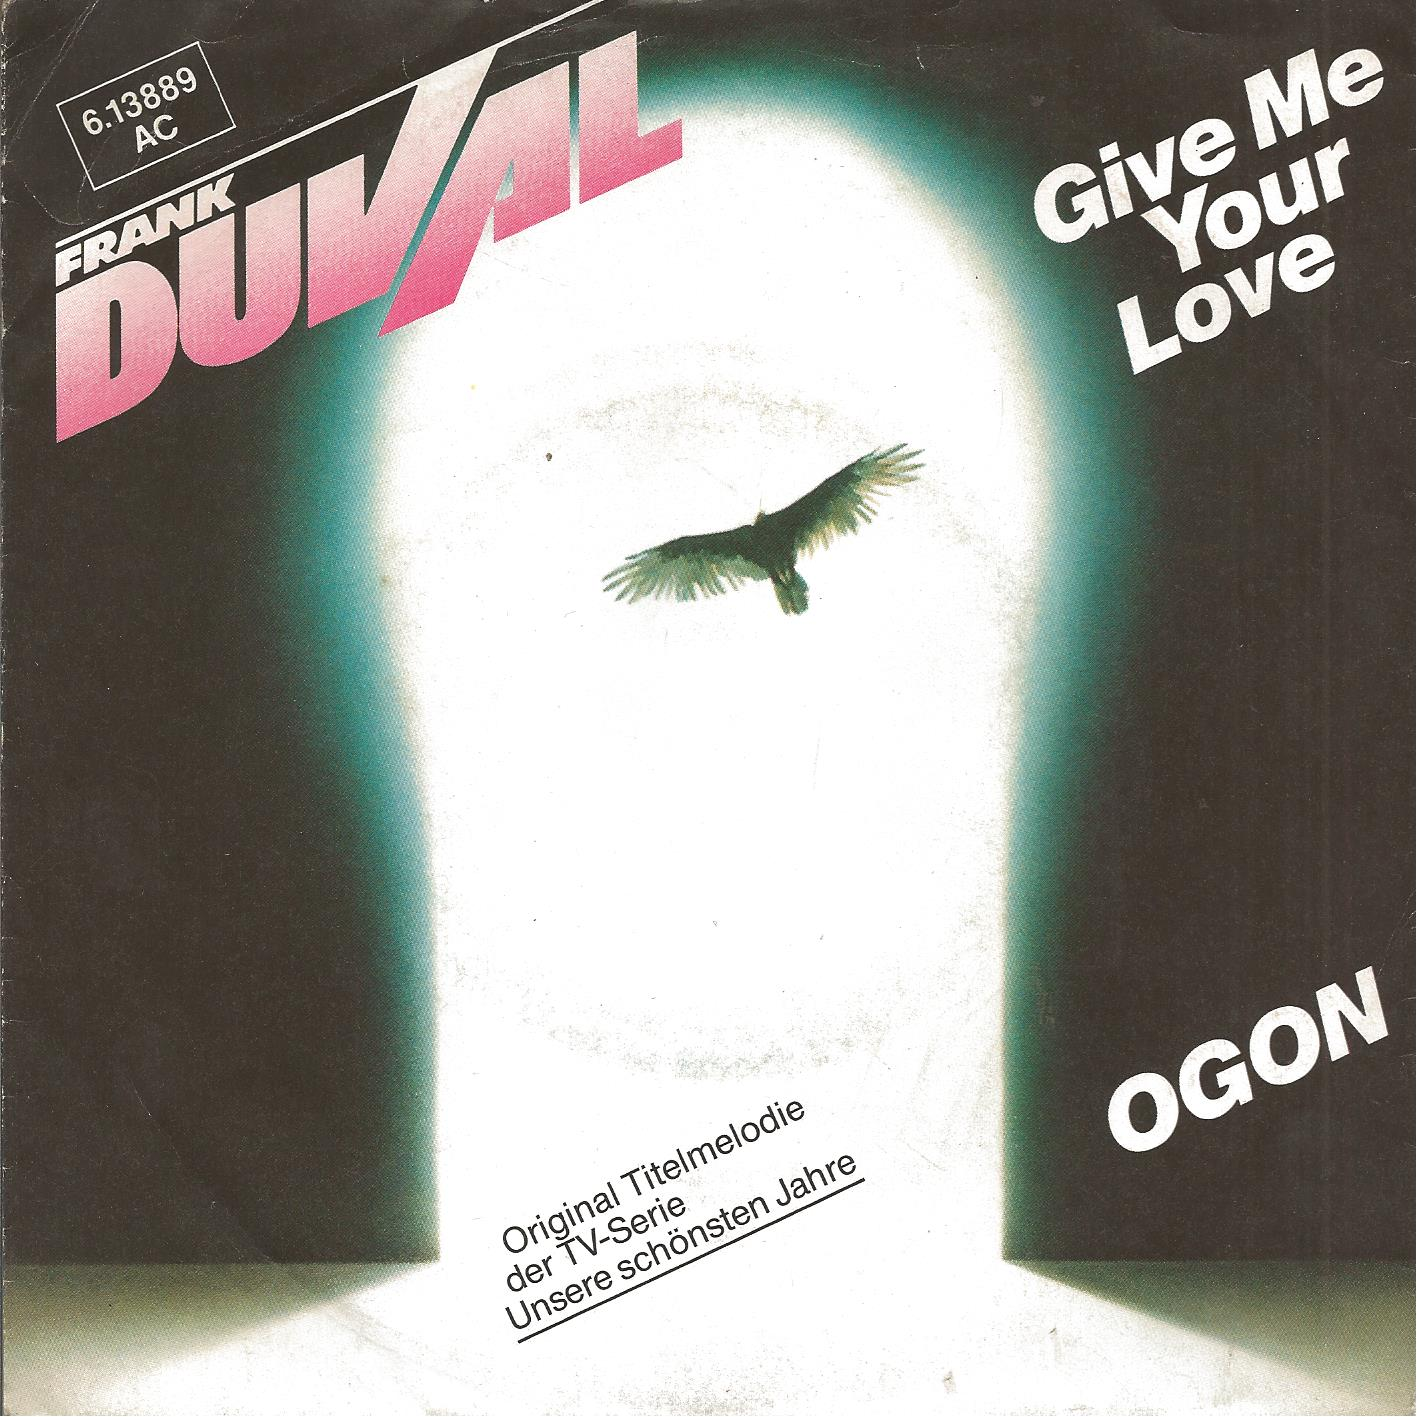 Give me your love / Ogon